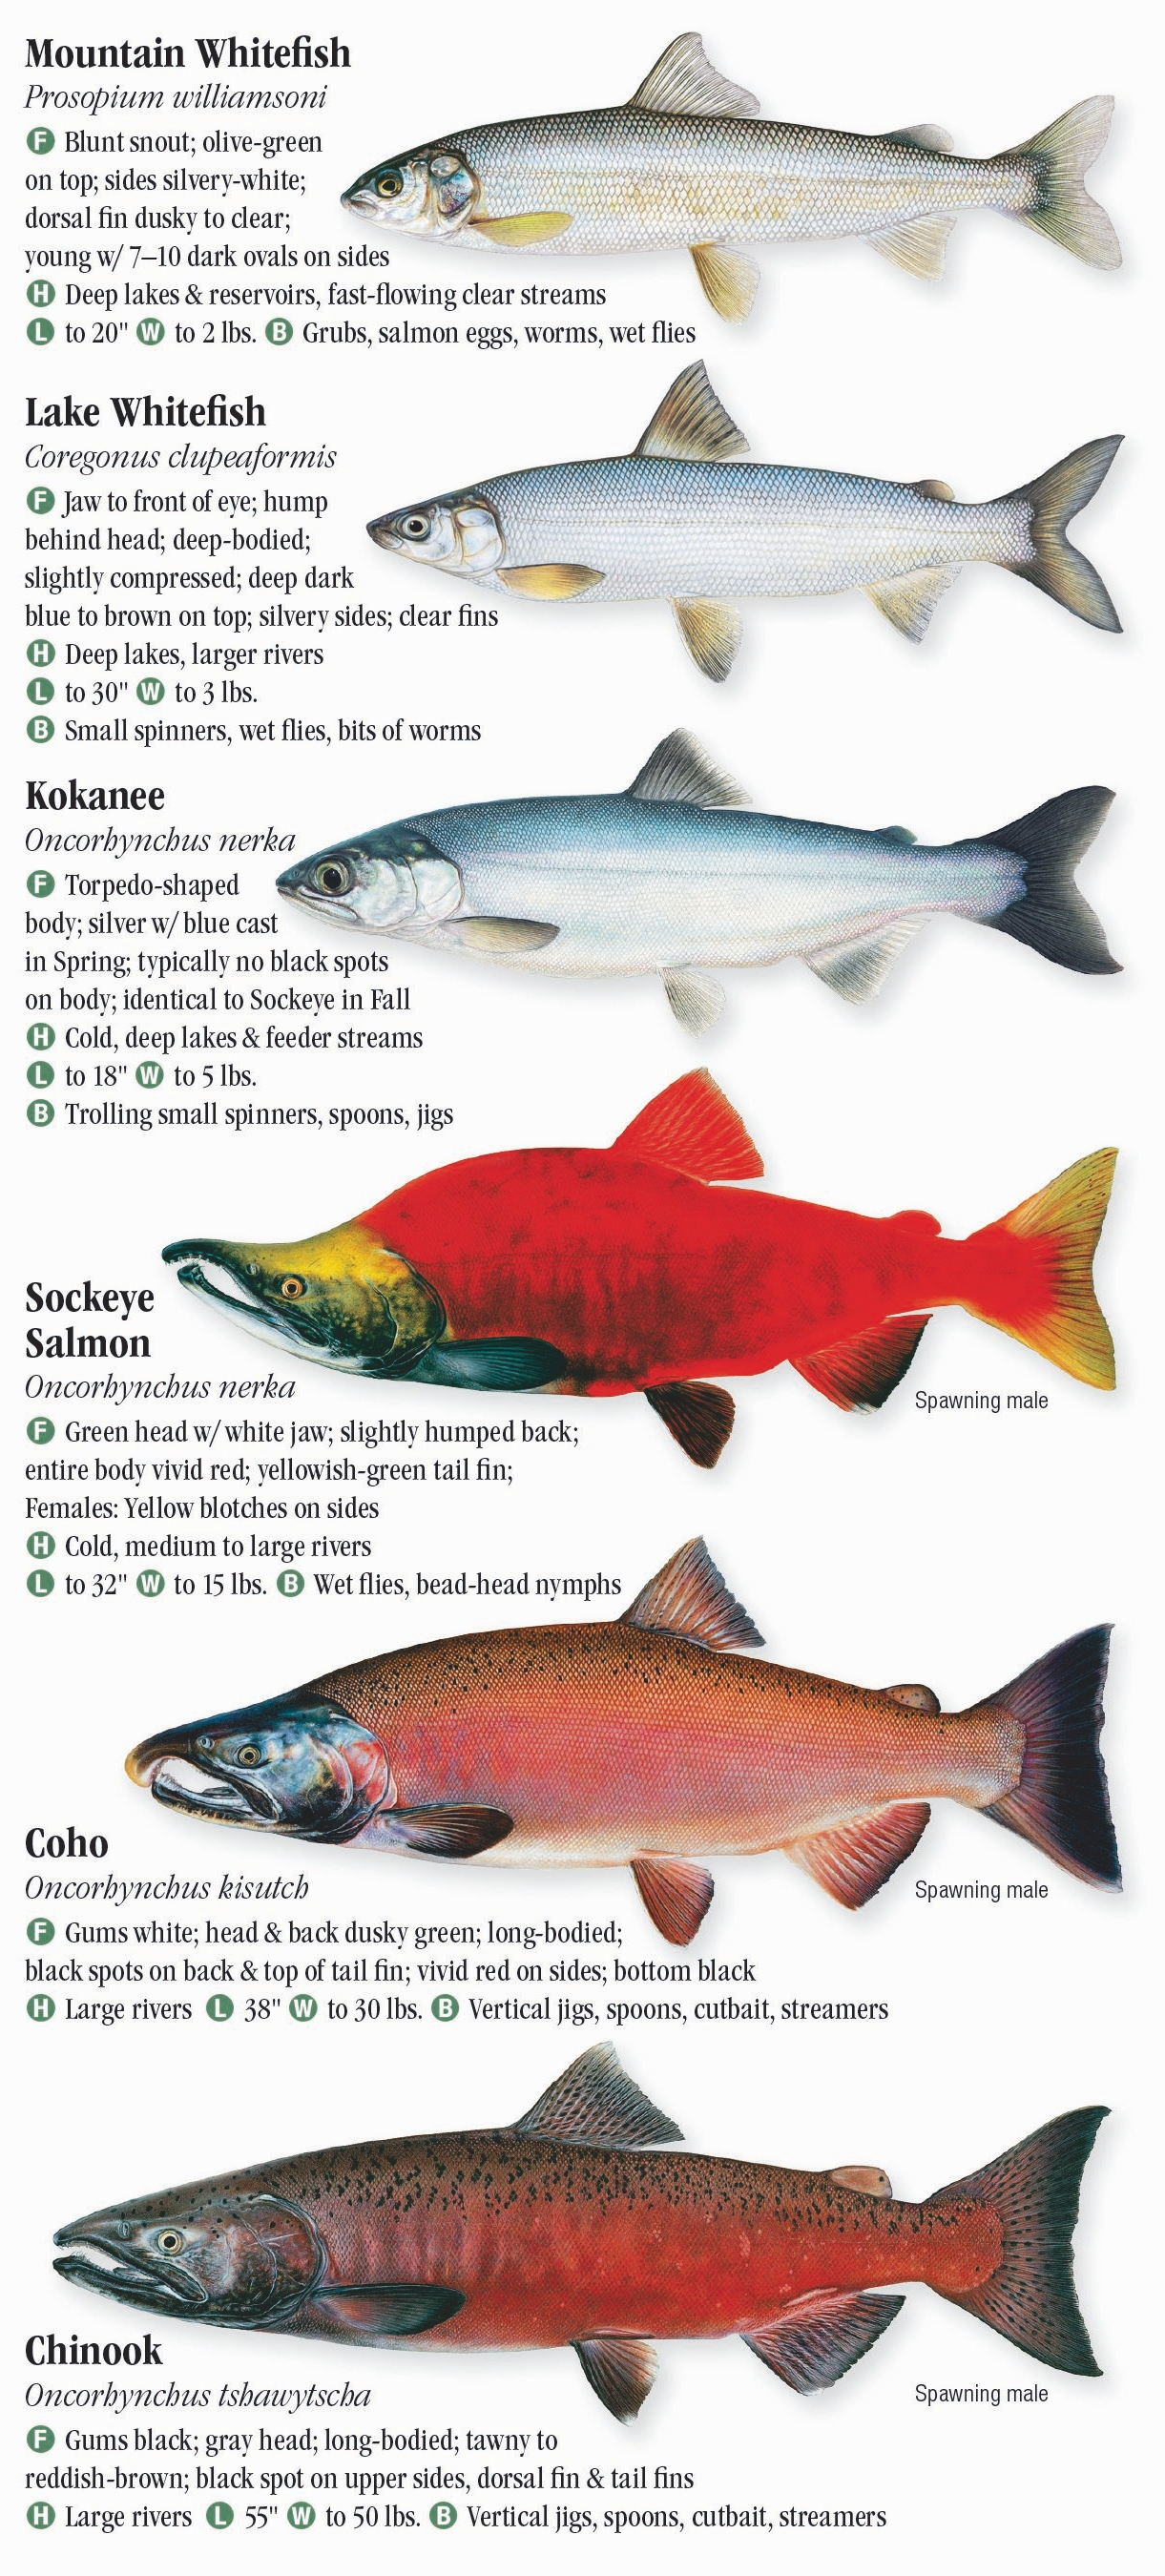 Freshwater Fishes of the Northern Rocky Mountains – Quick Reference ...